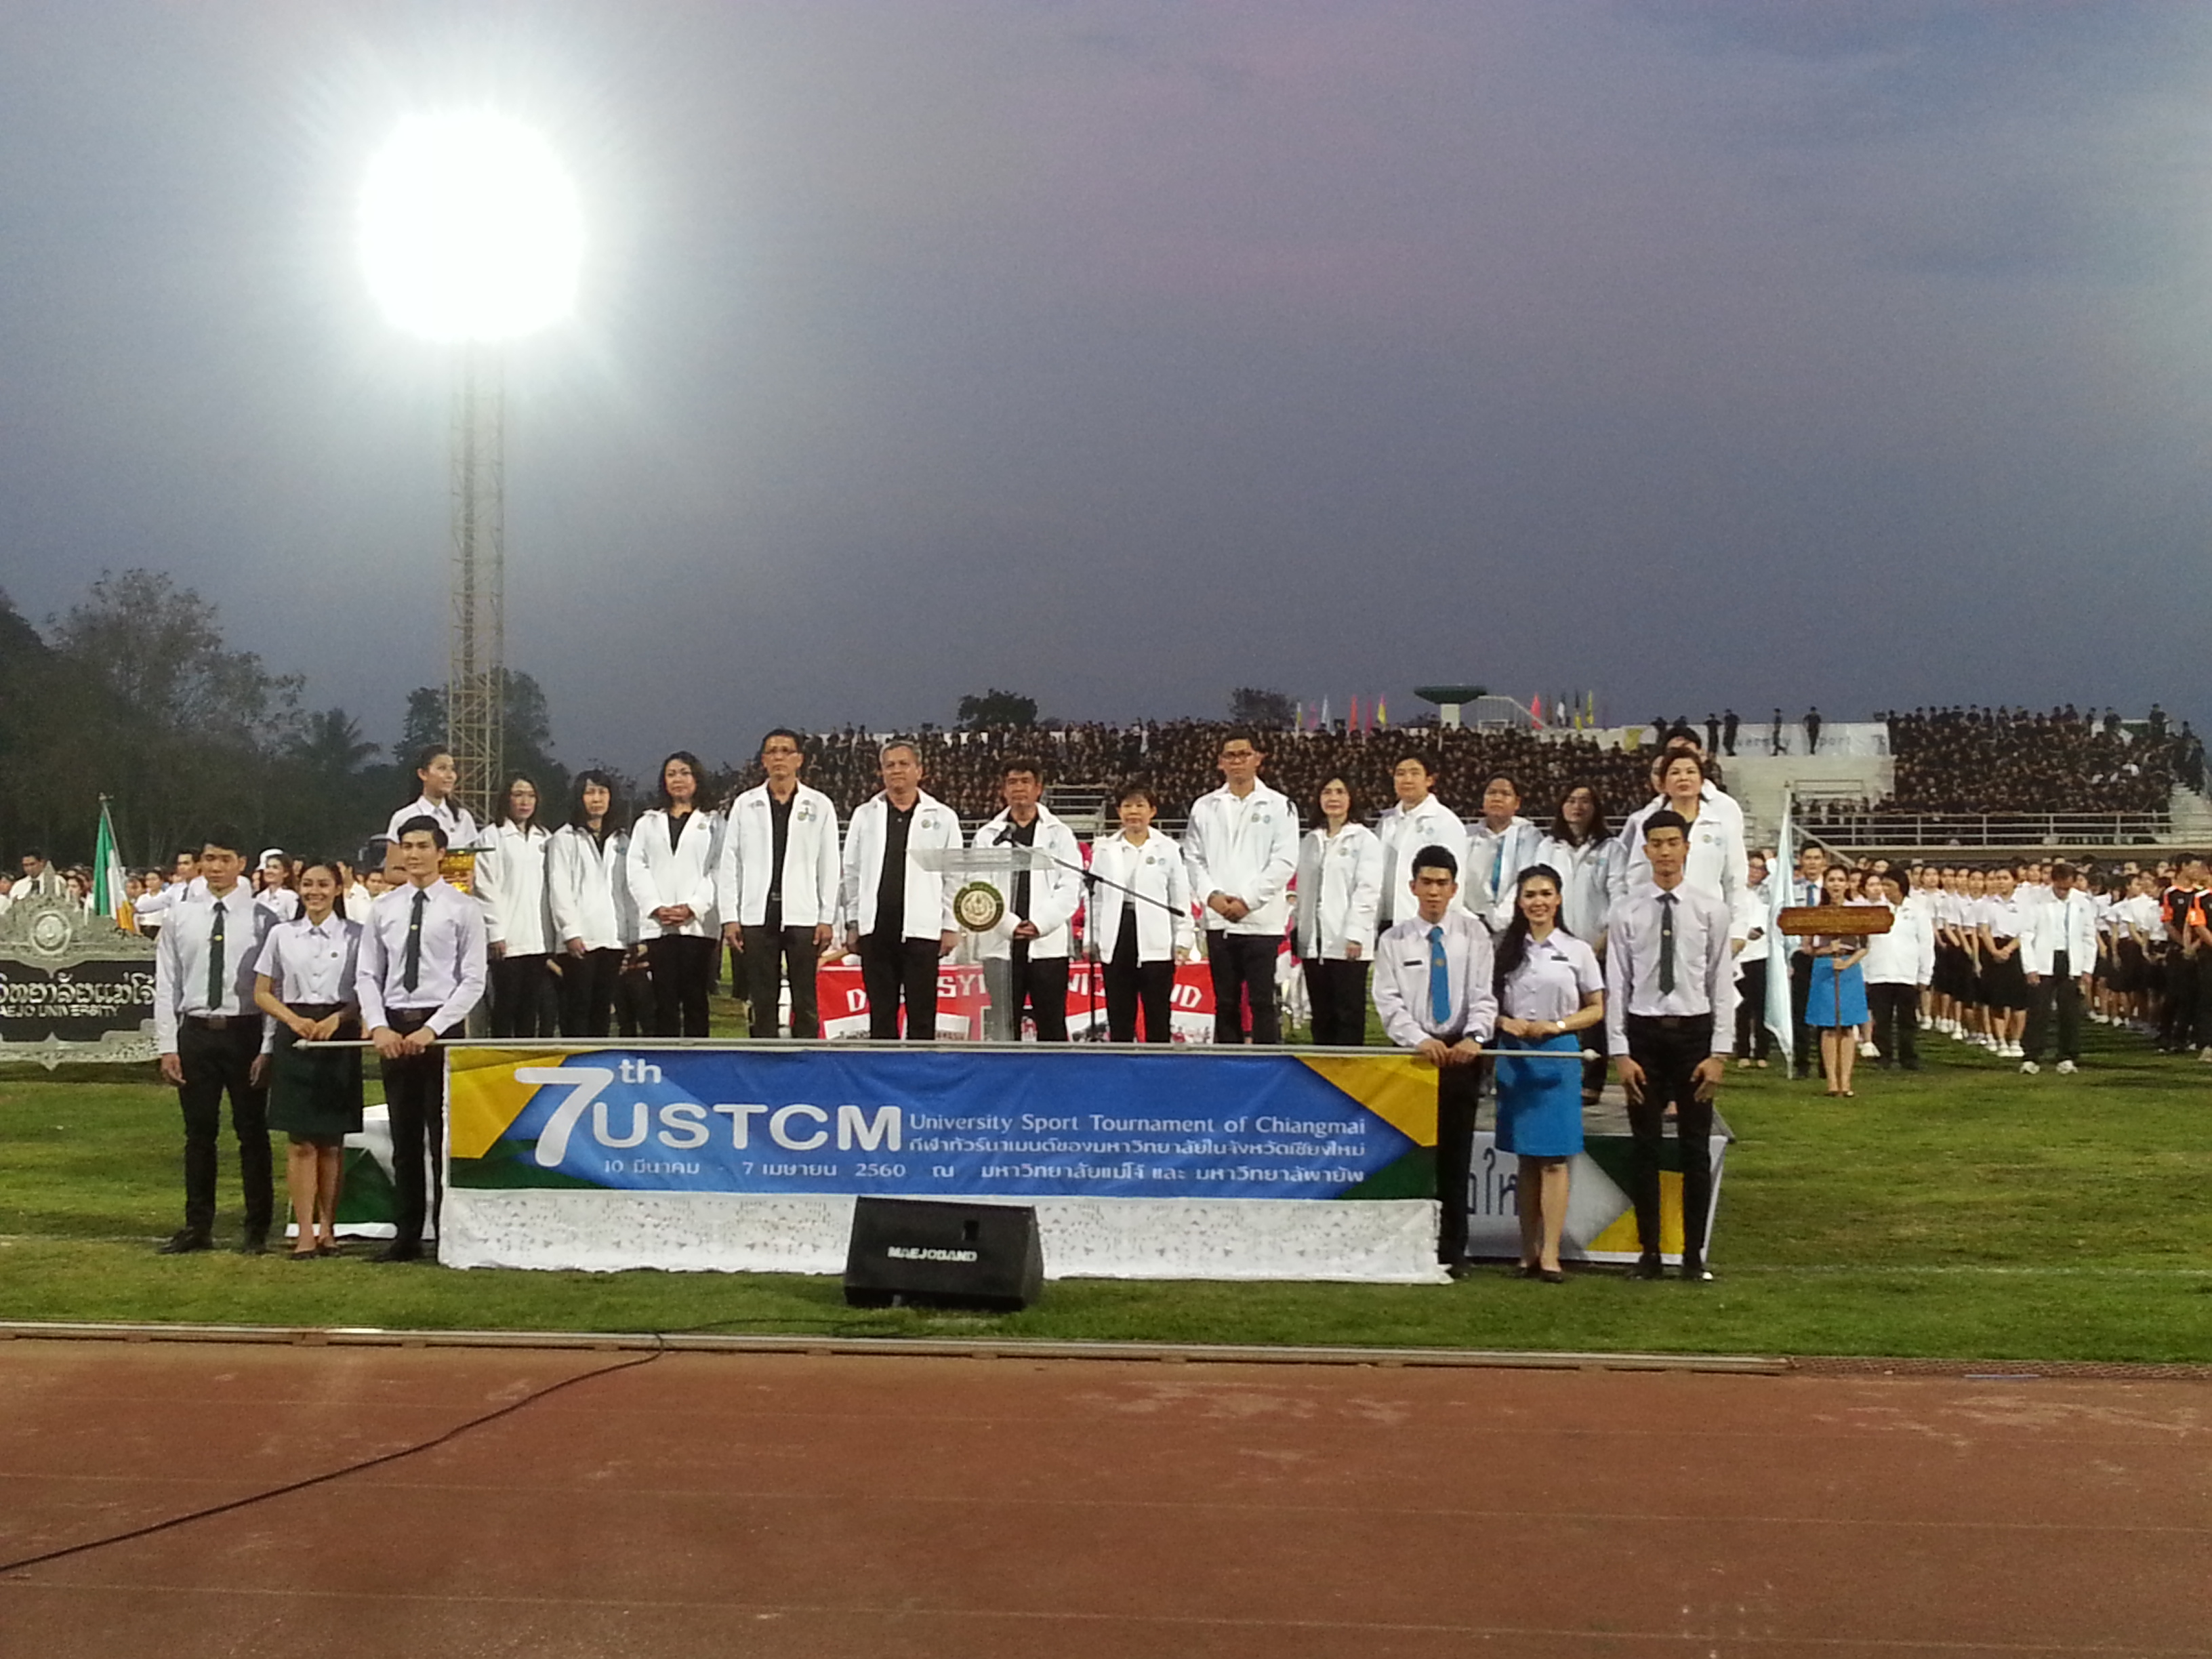 RMUTL participates in the opening ceremony of the 7th Chiang Mai University Sports Tournament